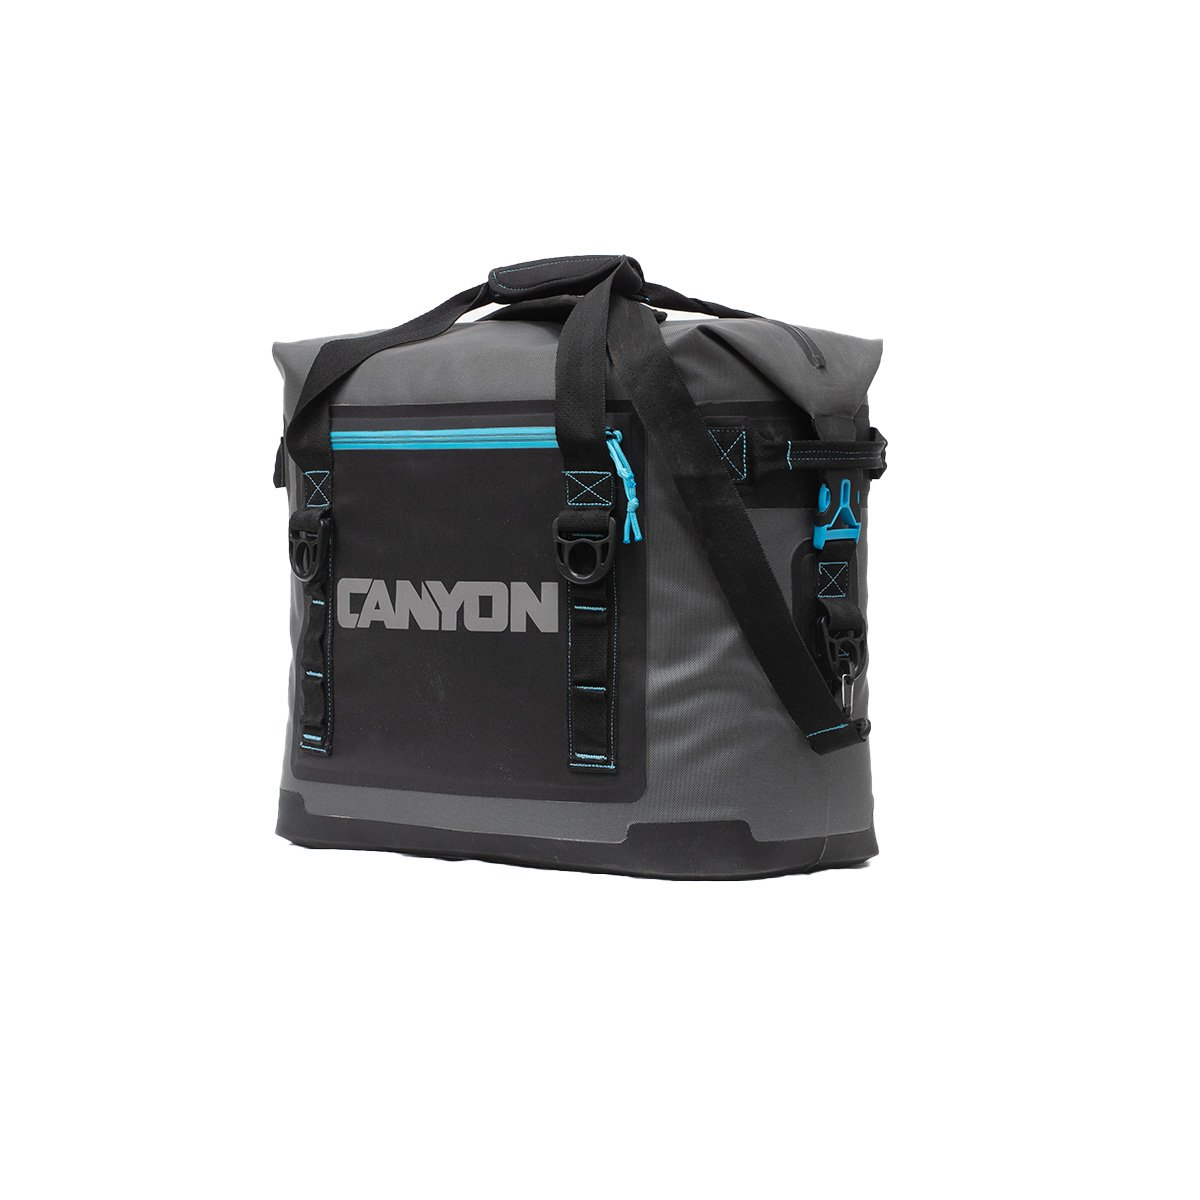 Canyon Cooler NOMAD Series